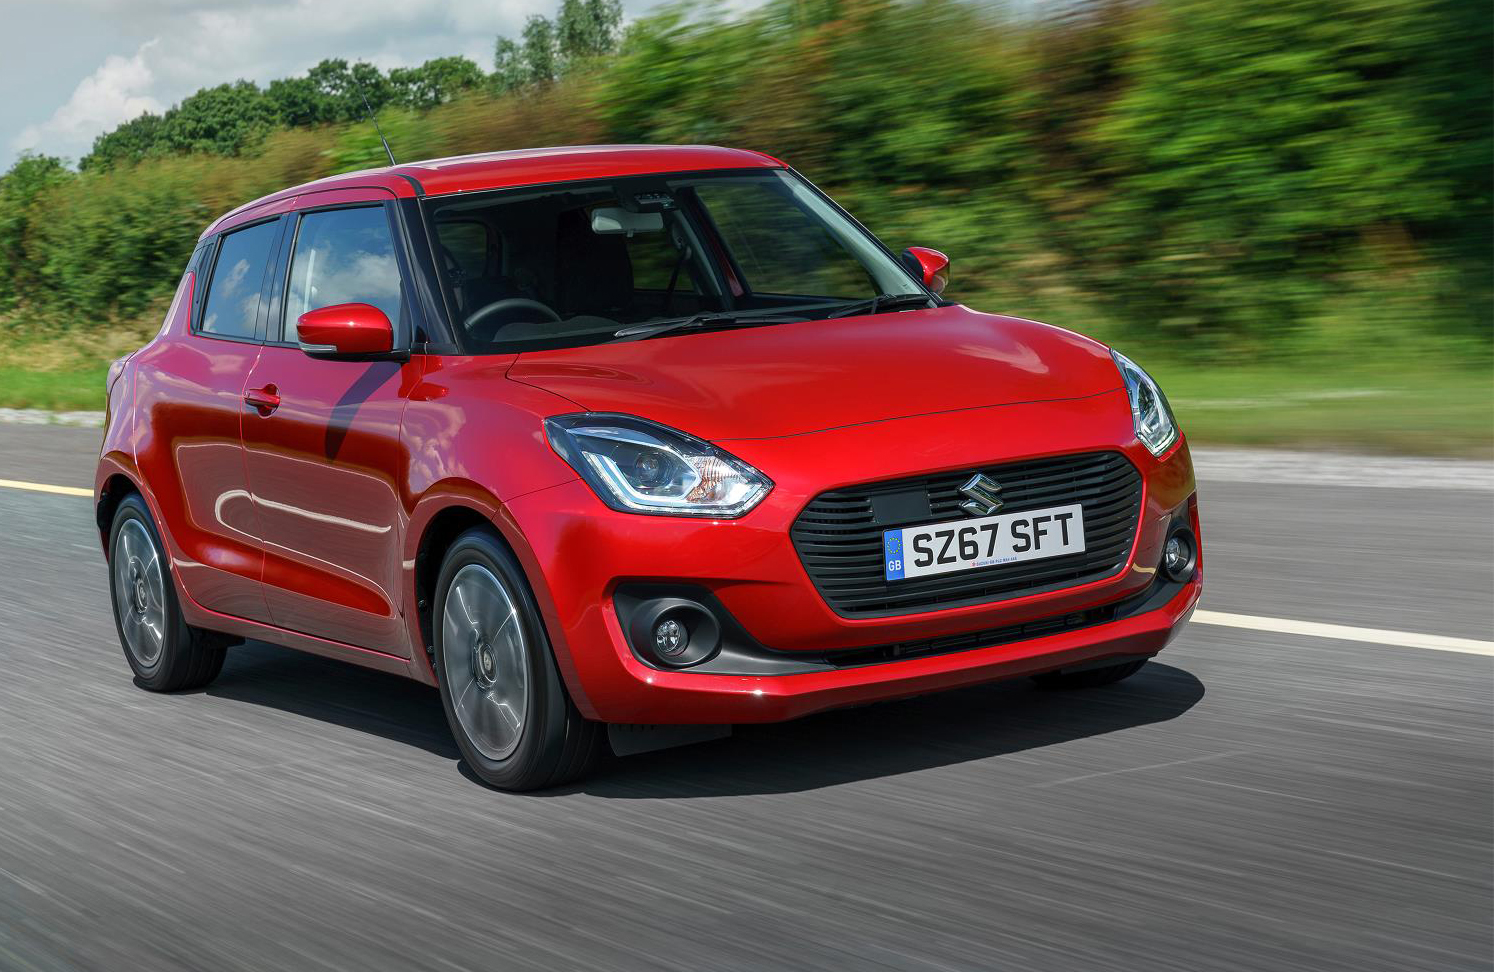 Suzuki has made its Swift better than ever - but not as much fun